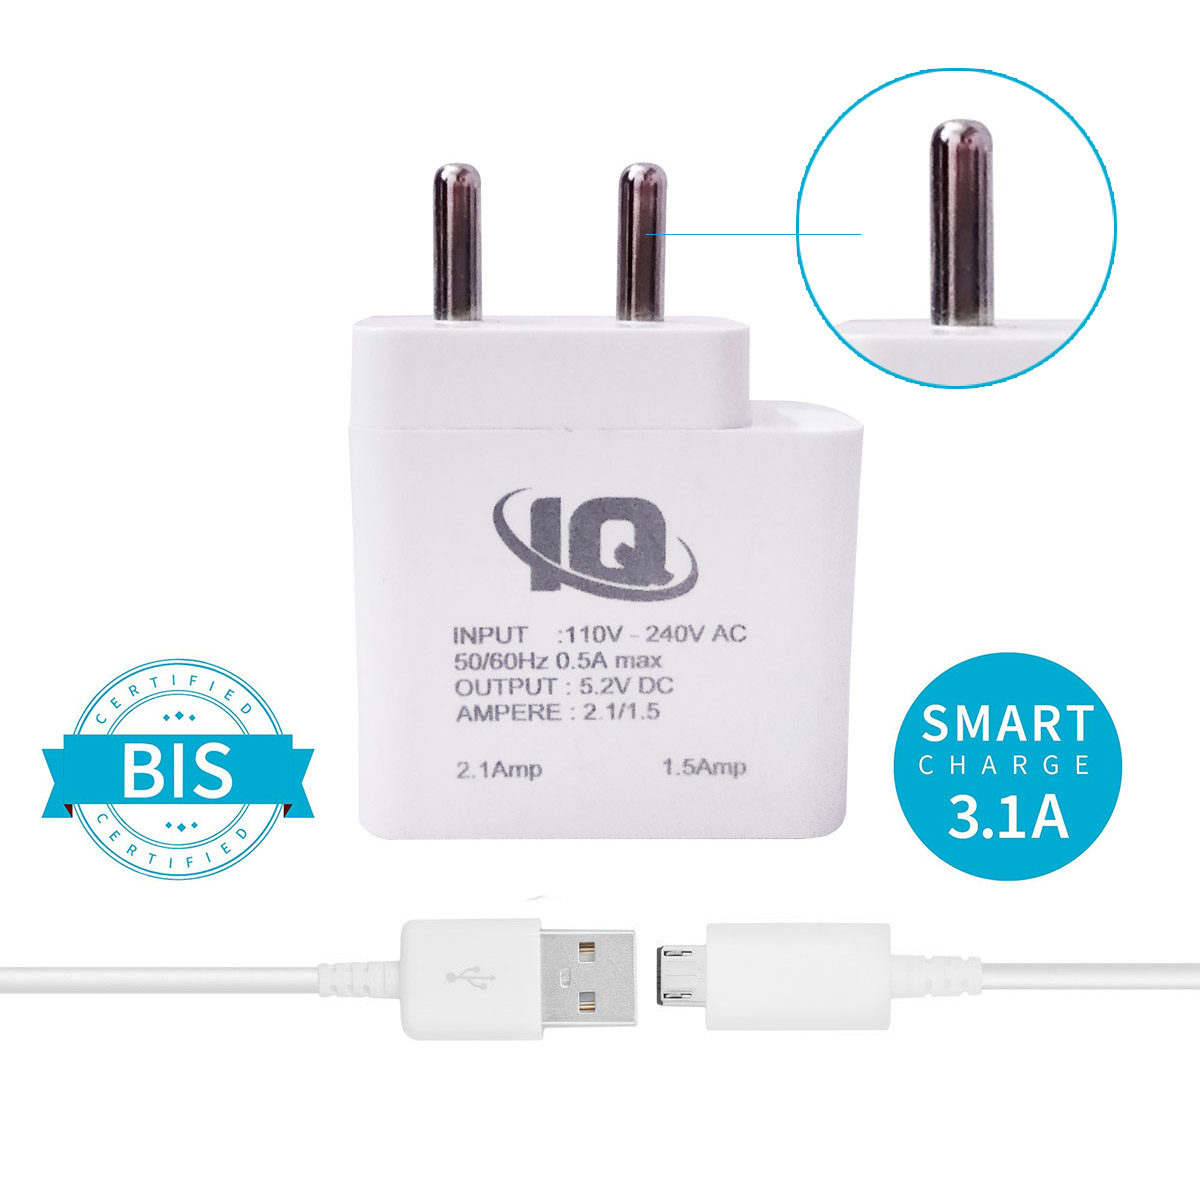 sublicart2 Redmi 4 Supported Wall Charger Made In India,travel Charger ,mobile Charger,dual Port Usb Plug Wall Charger Adapter With 1 Meter Micro Usb Cable By S